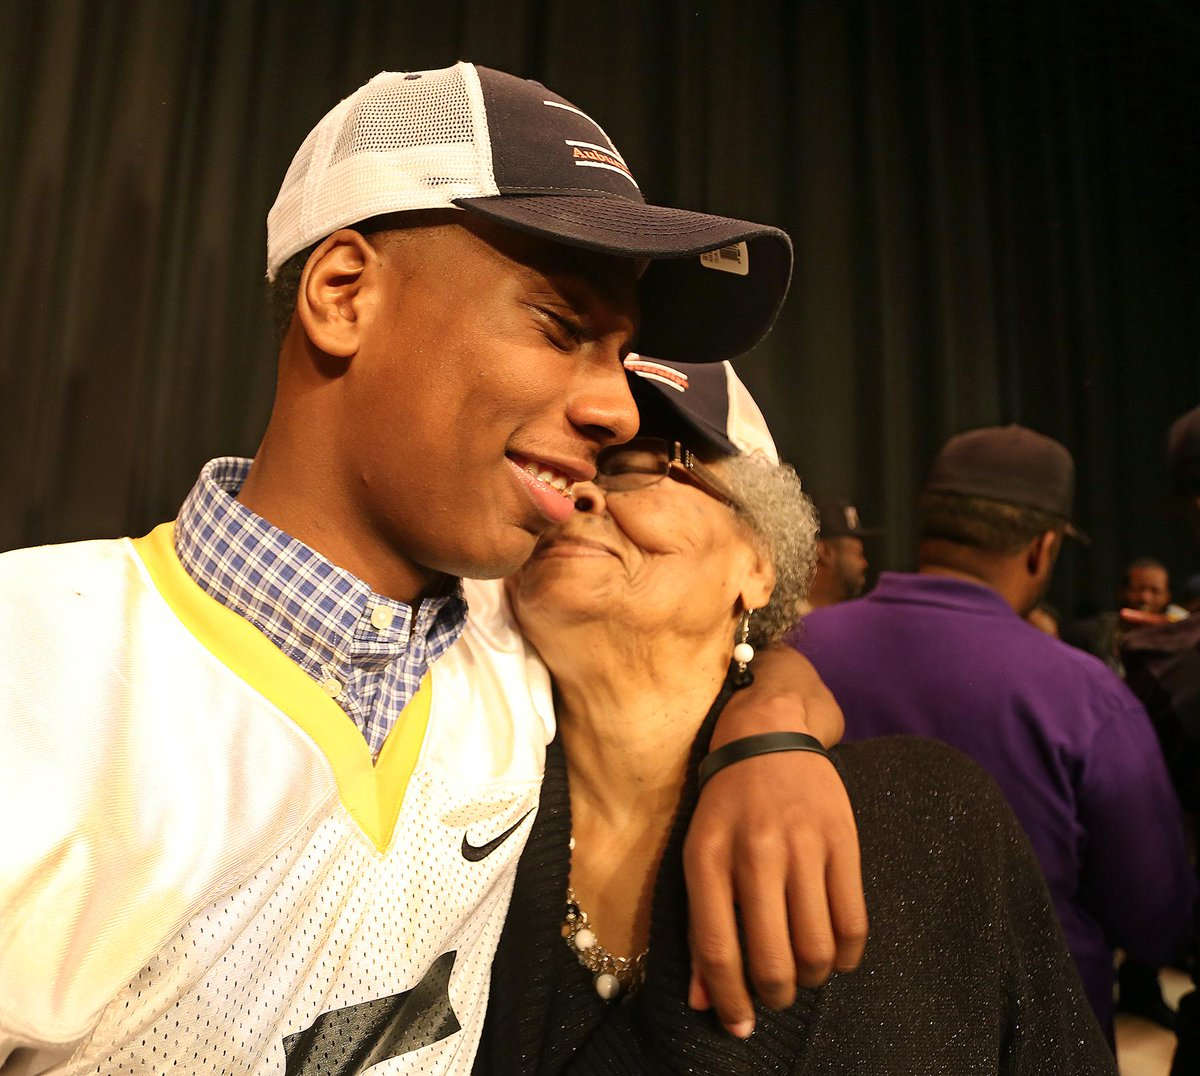 In the running for pic of the day: Lakewood's Ryan Davis and grandmother Emma Davis http://t.co/ftnwyKNQpZ